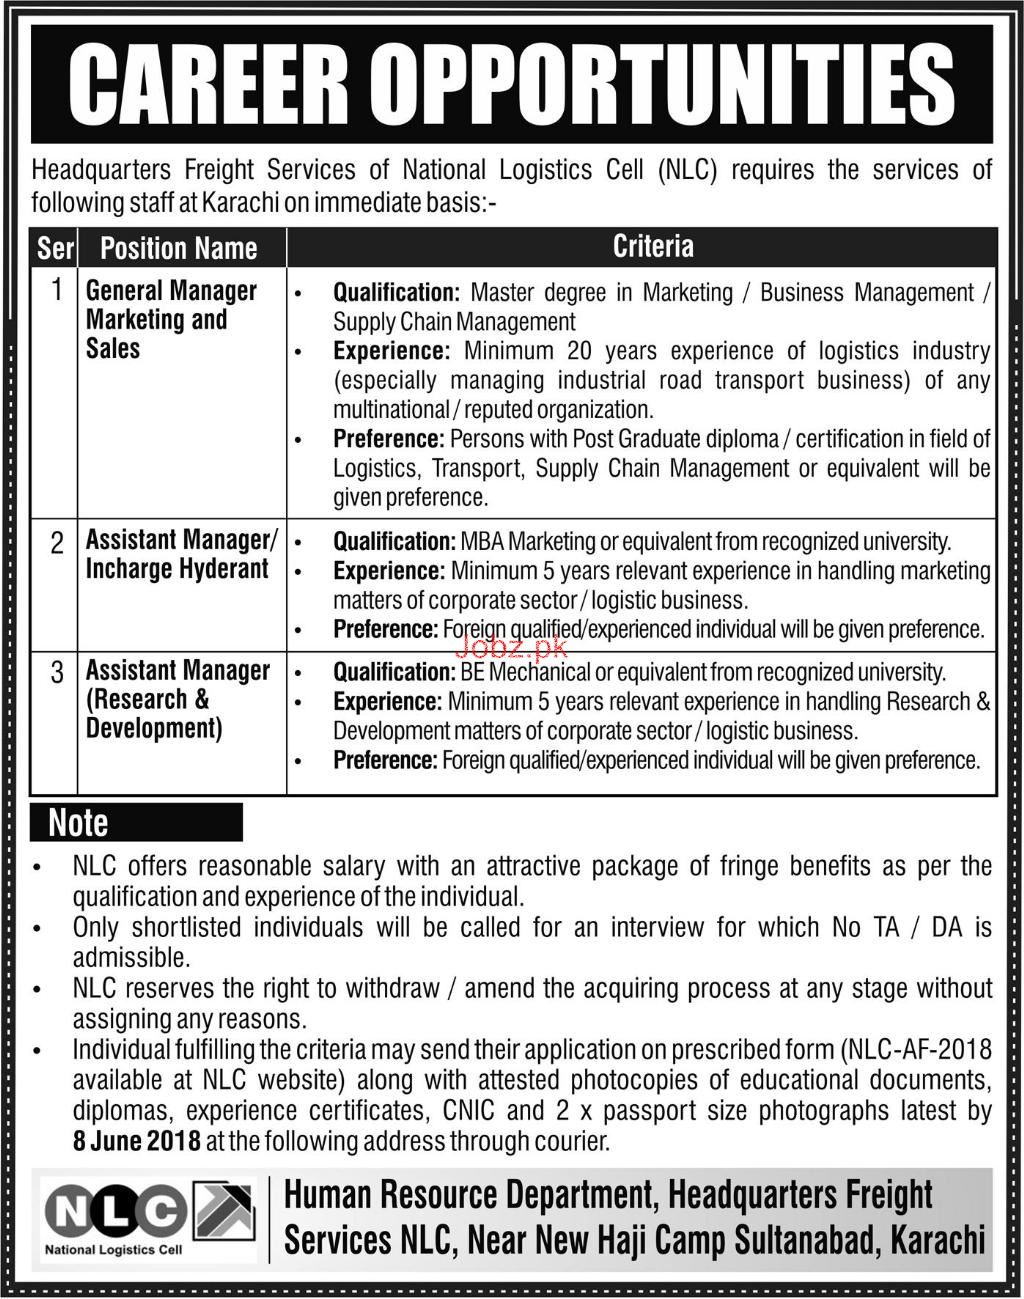 Headquarter Freight Services National Logistics Cell NLC Job